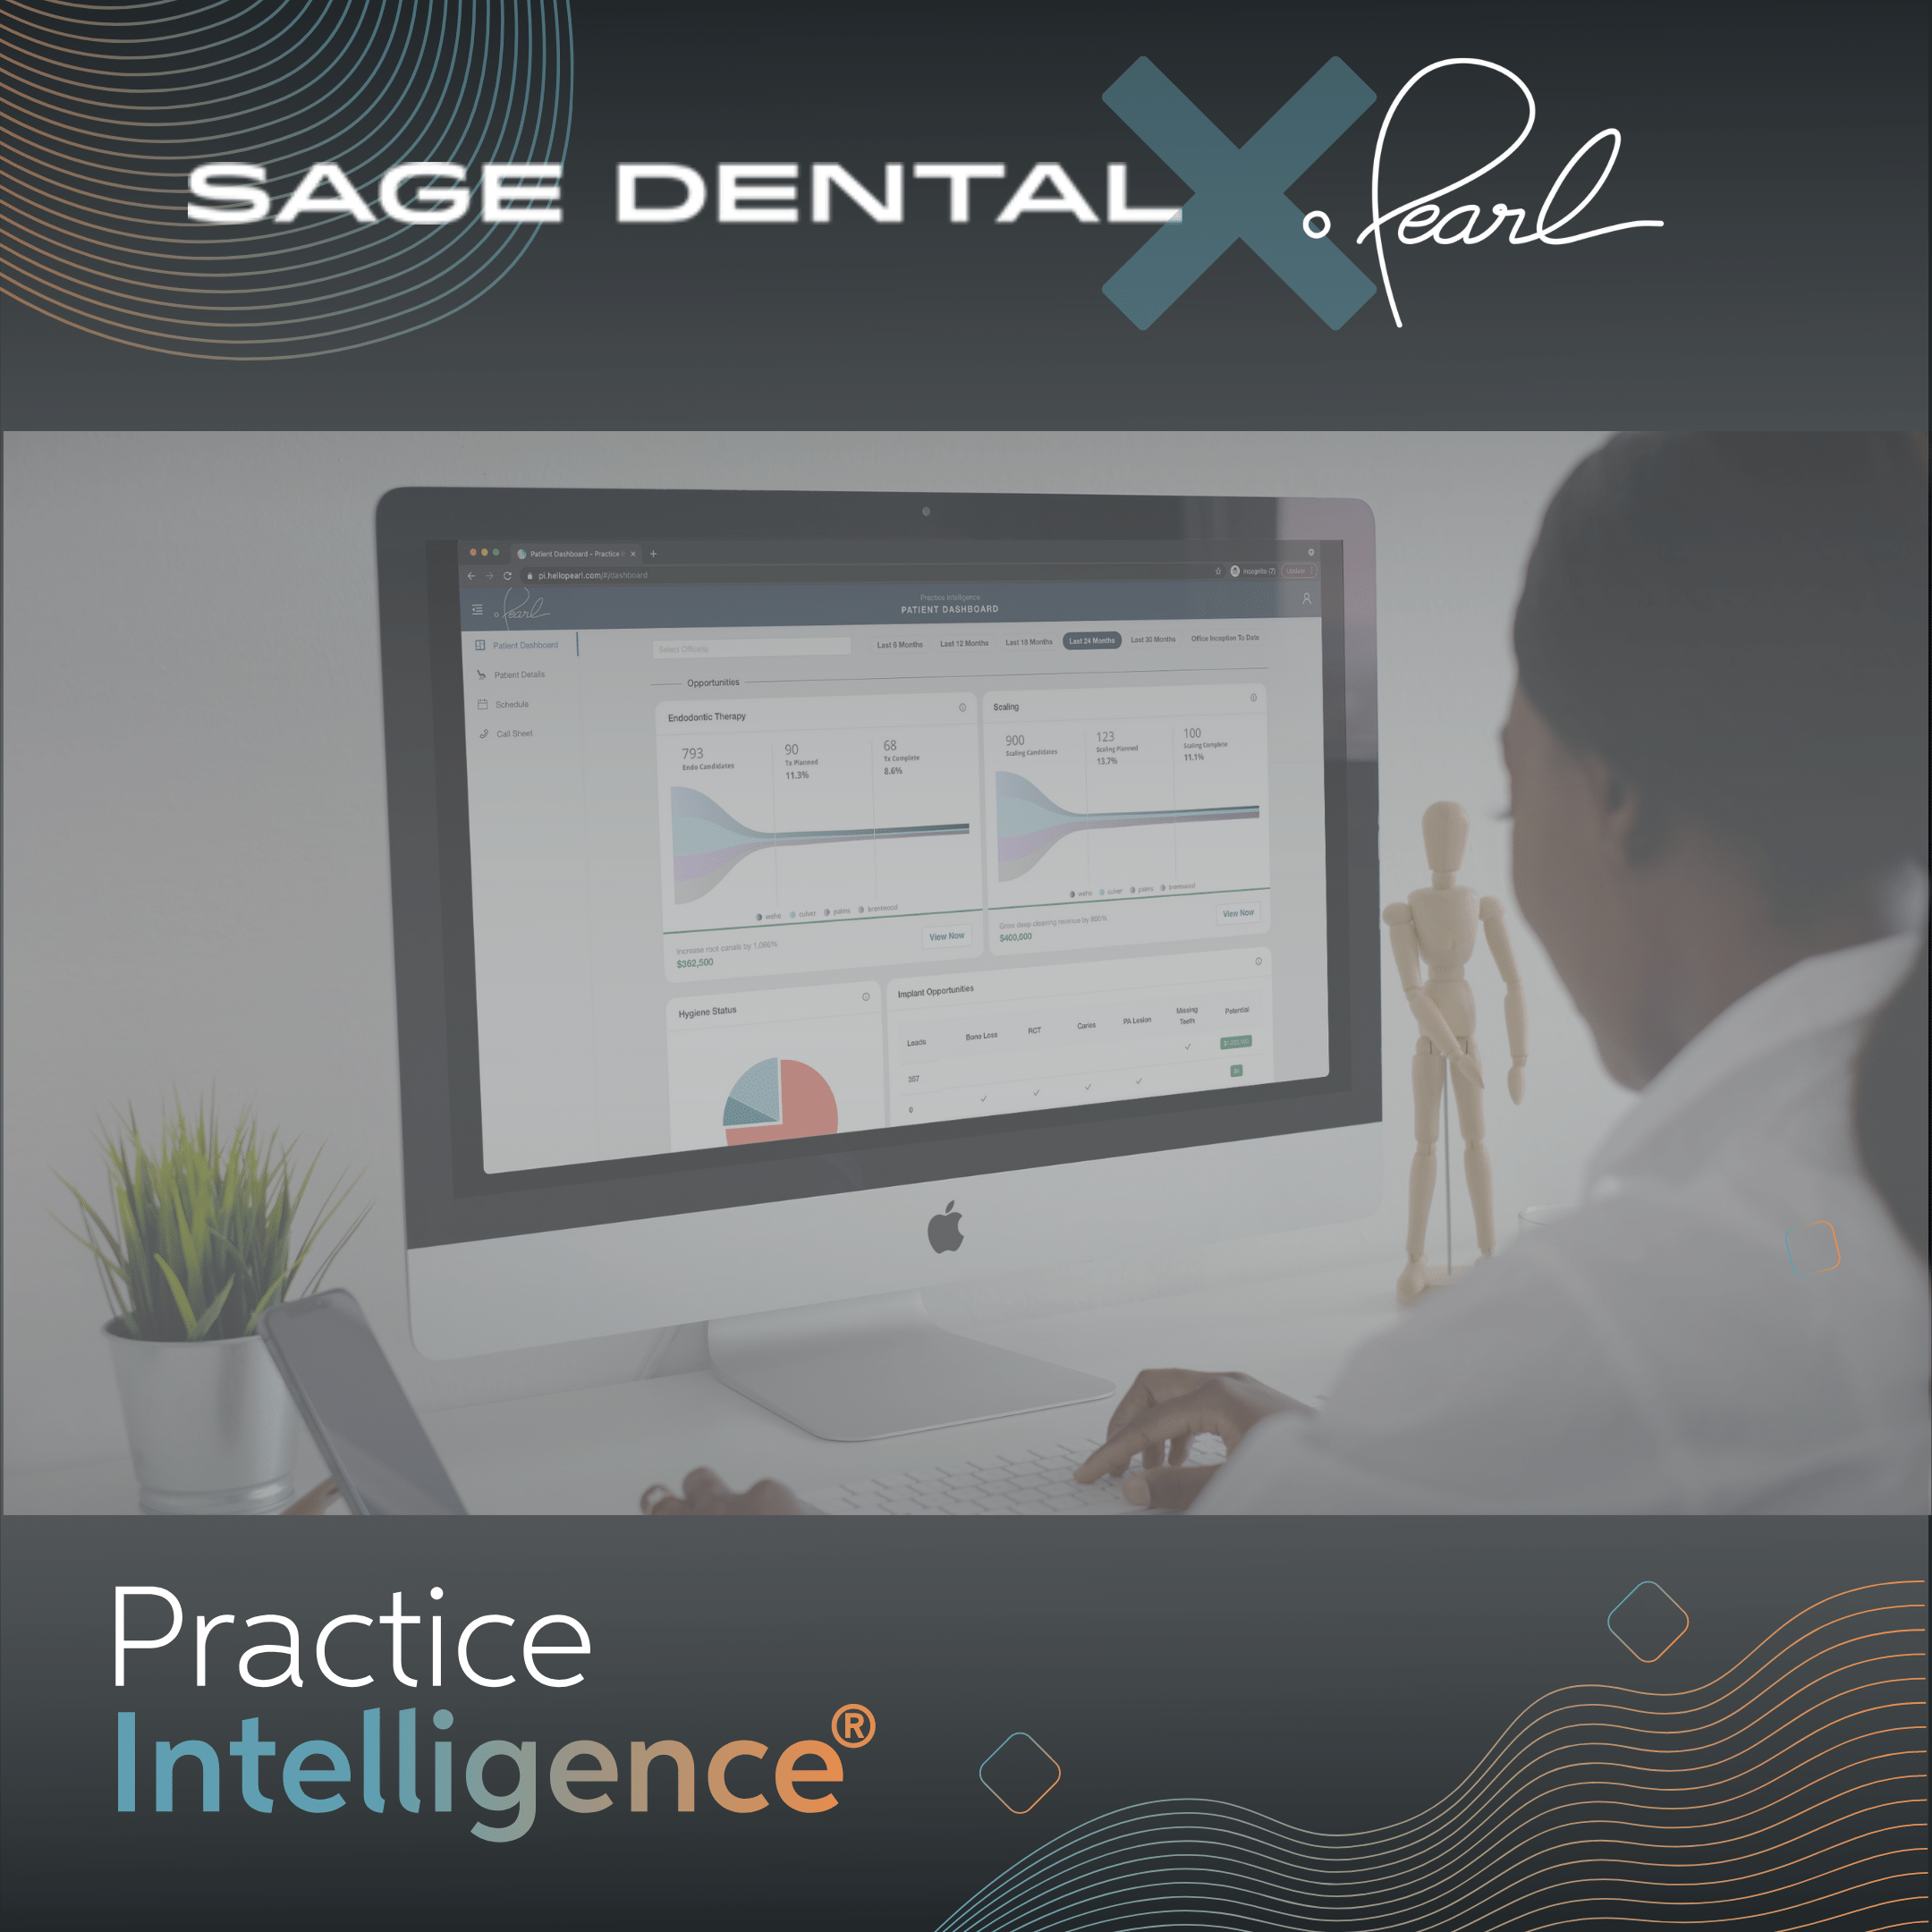 Sage Dental to Deploy Pearl's AI Technology Across Its Offices